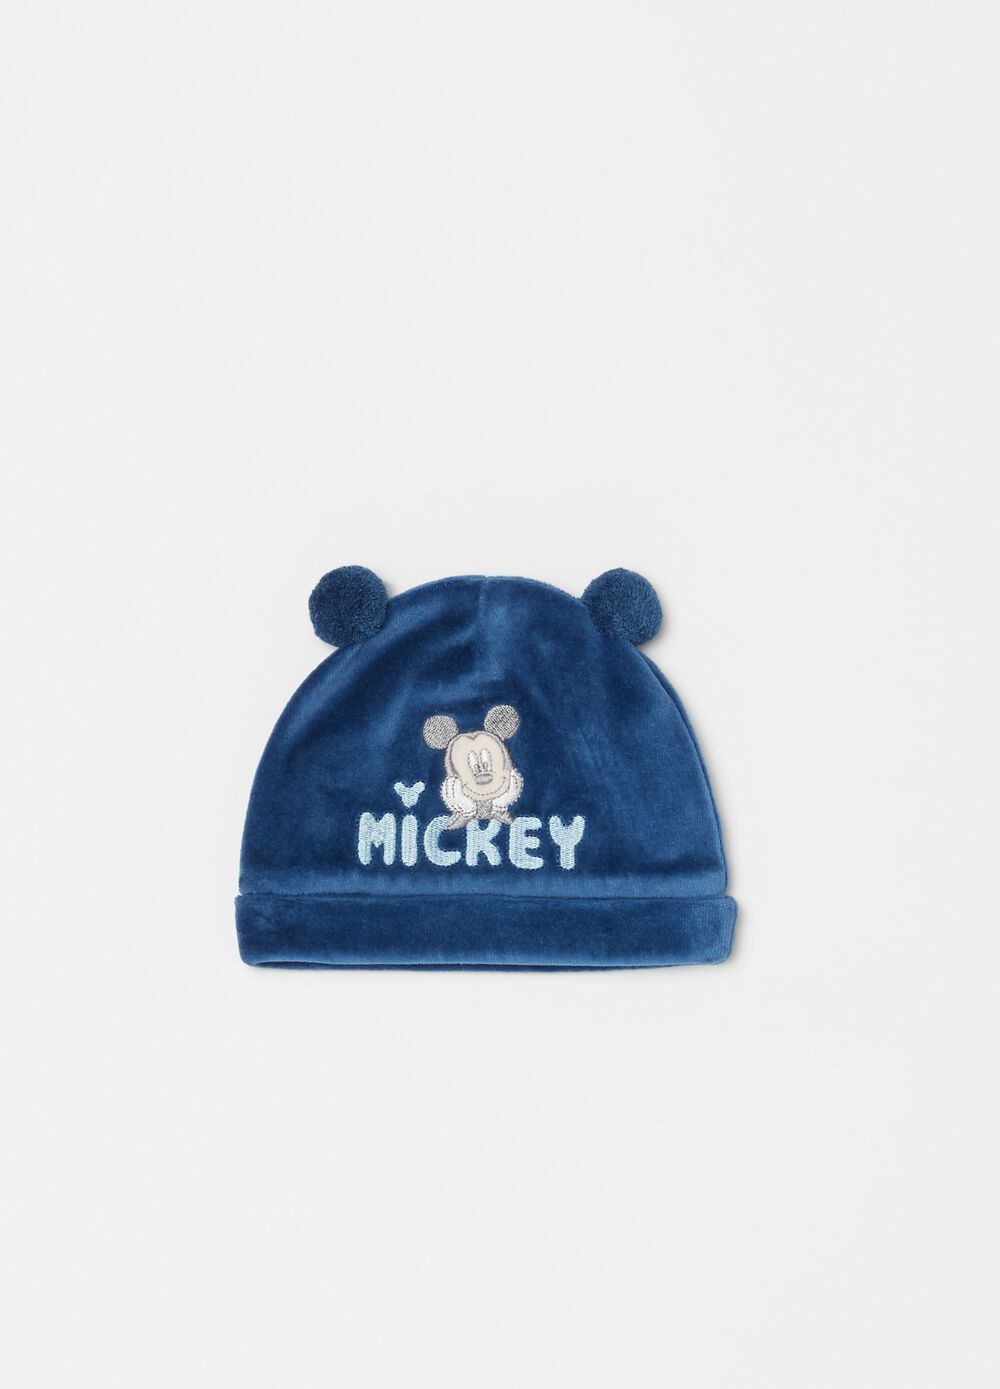 Disney Mickey Mouse hat with embroidery